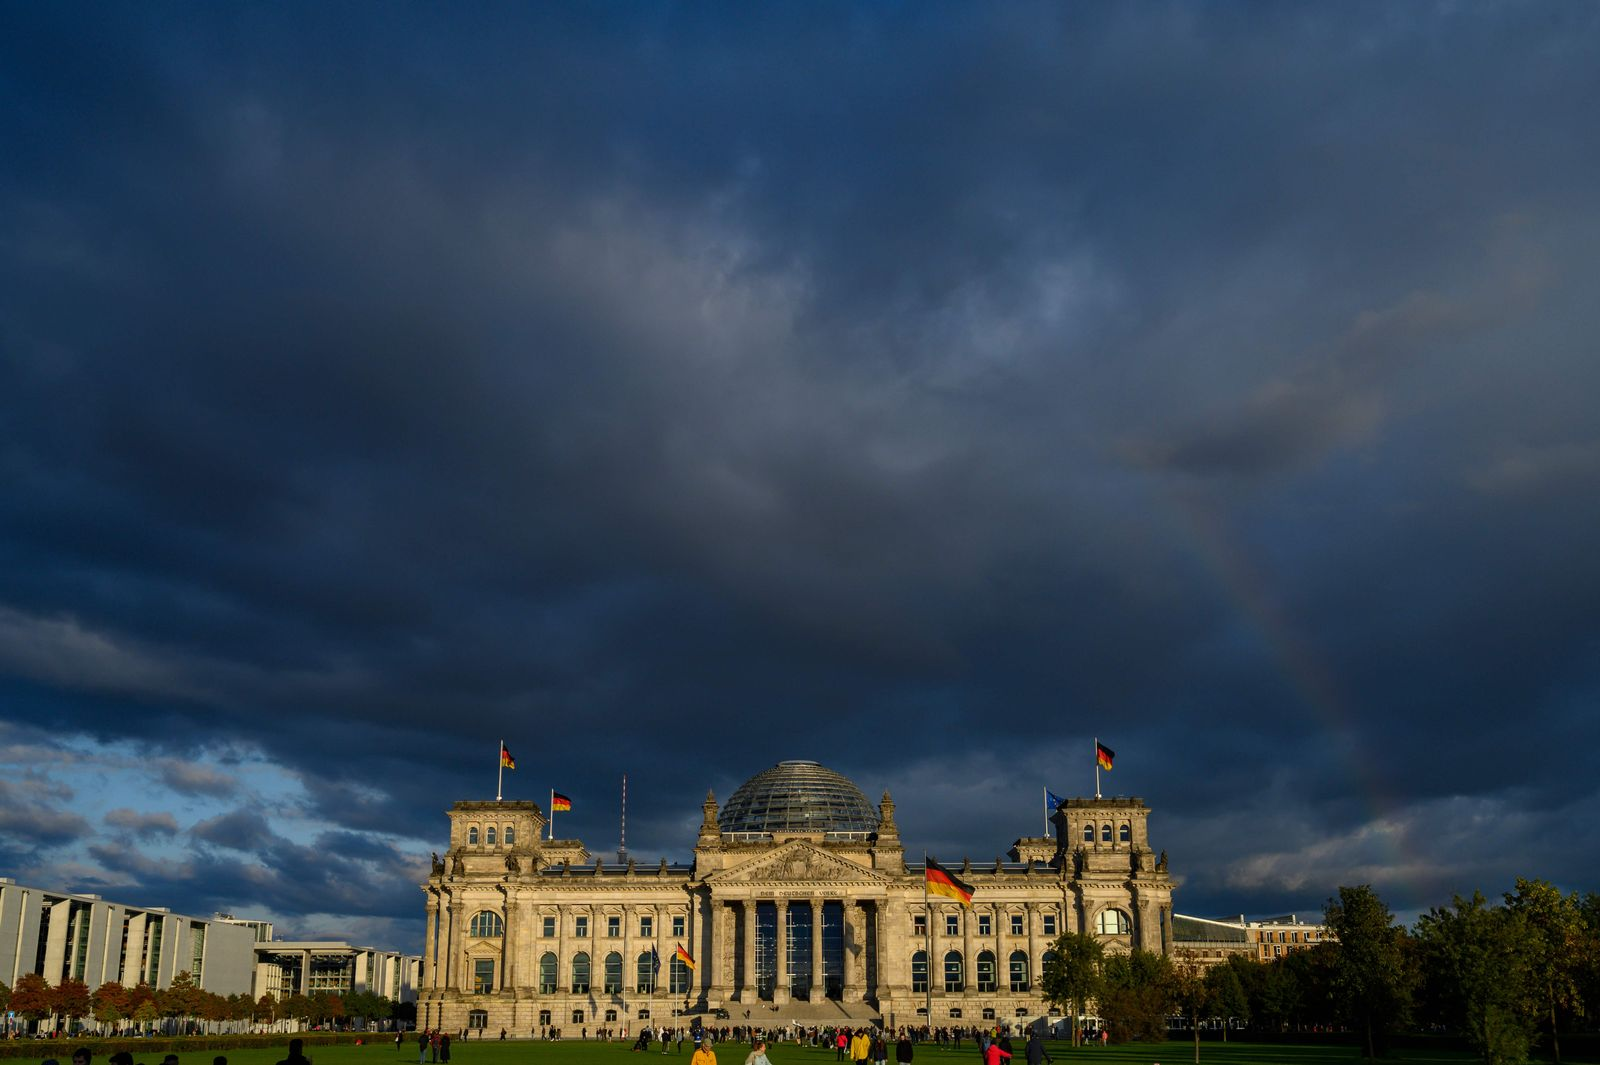 GERMANY-GOVERNMENT-CHANCELLERY